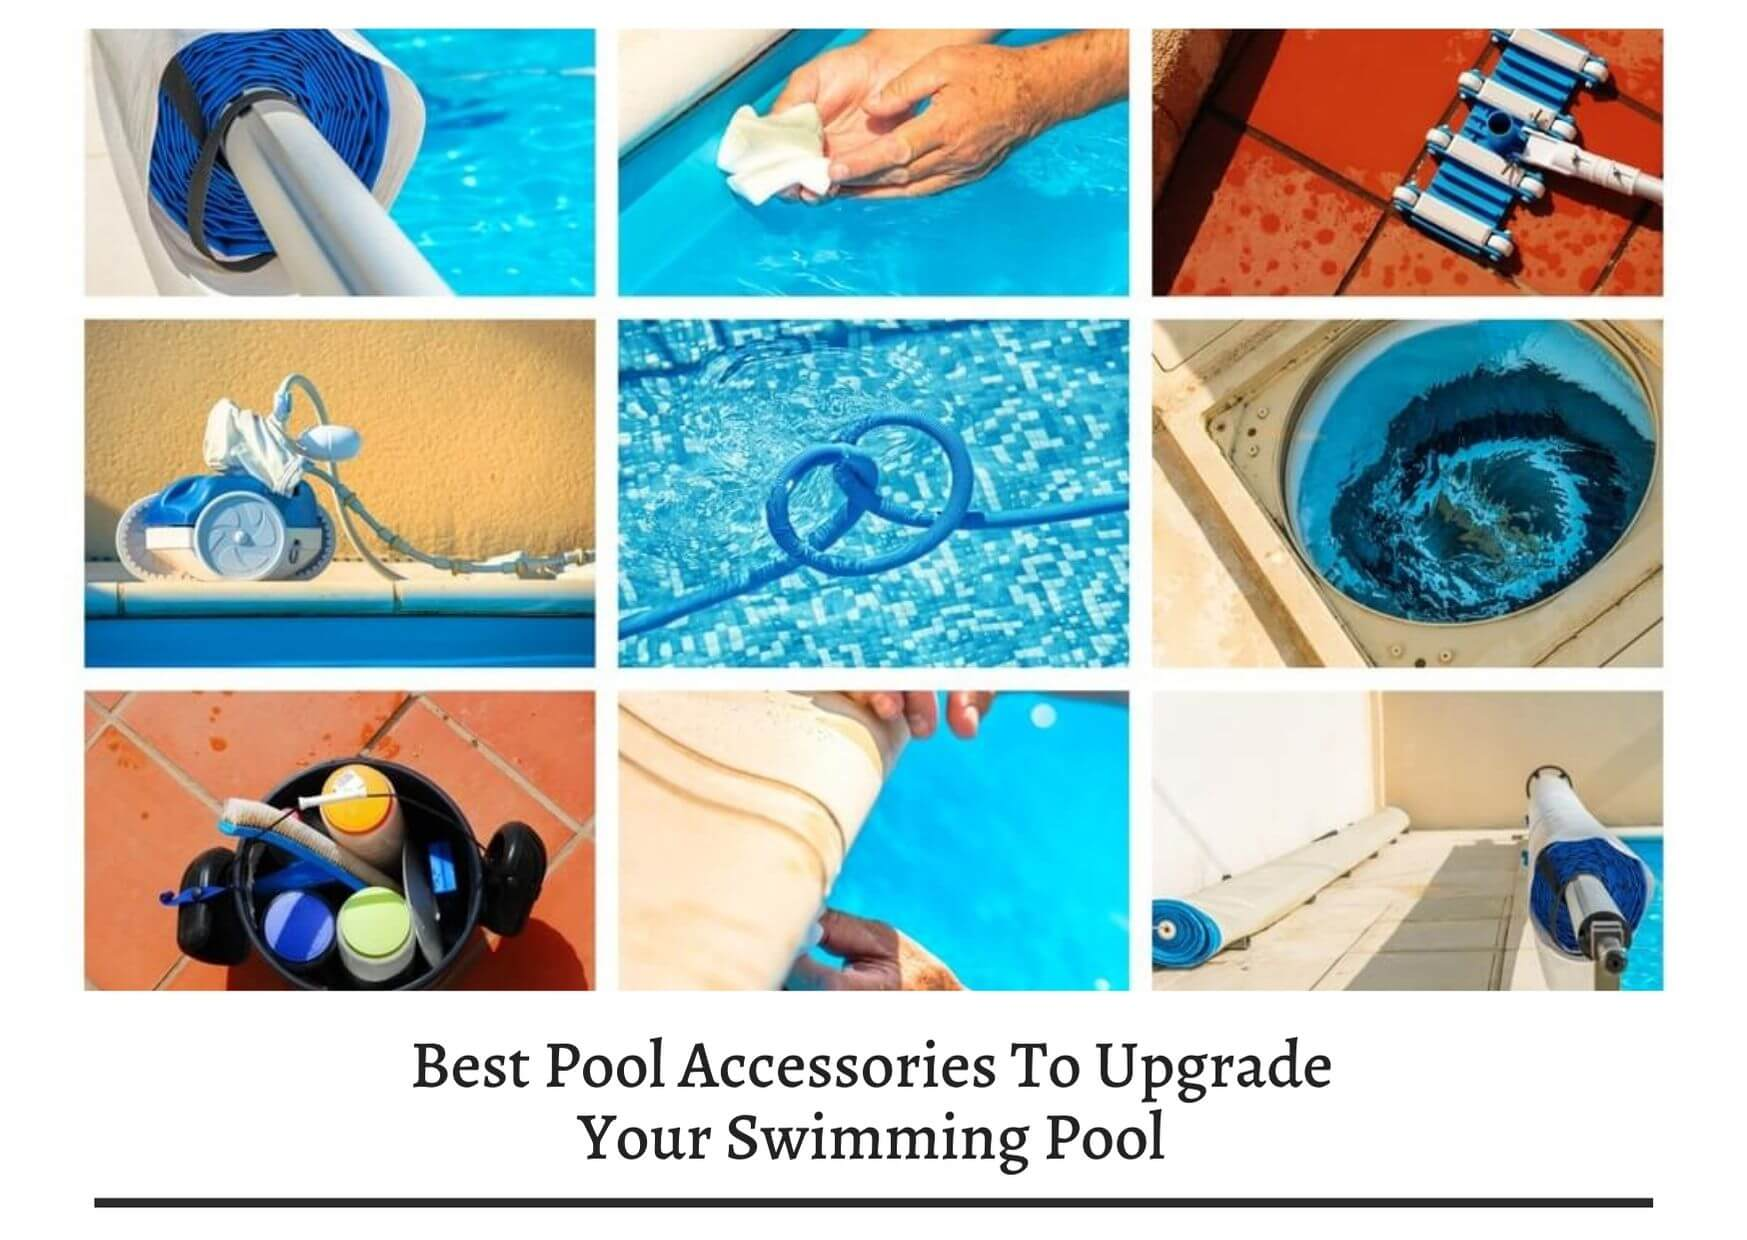 Best Pool Accessories To Upgrade Your Swimming Pool